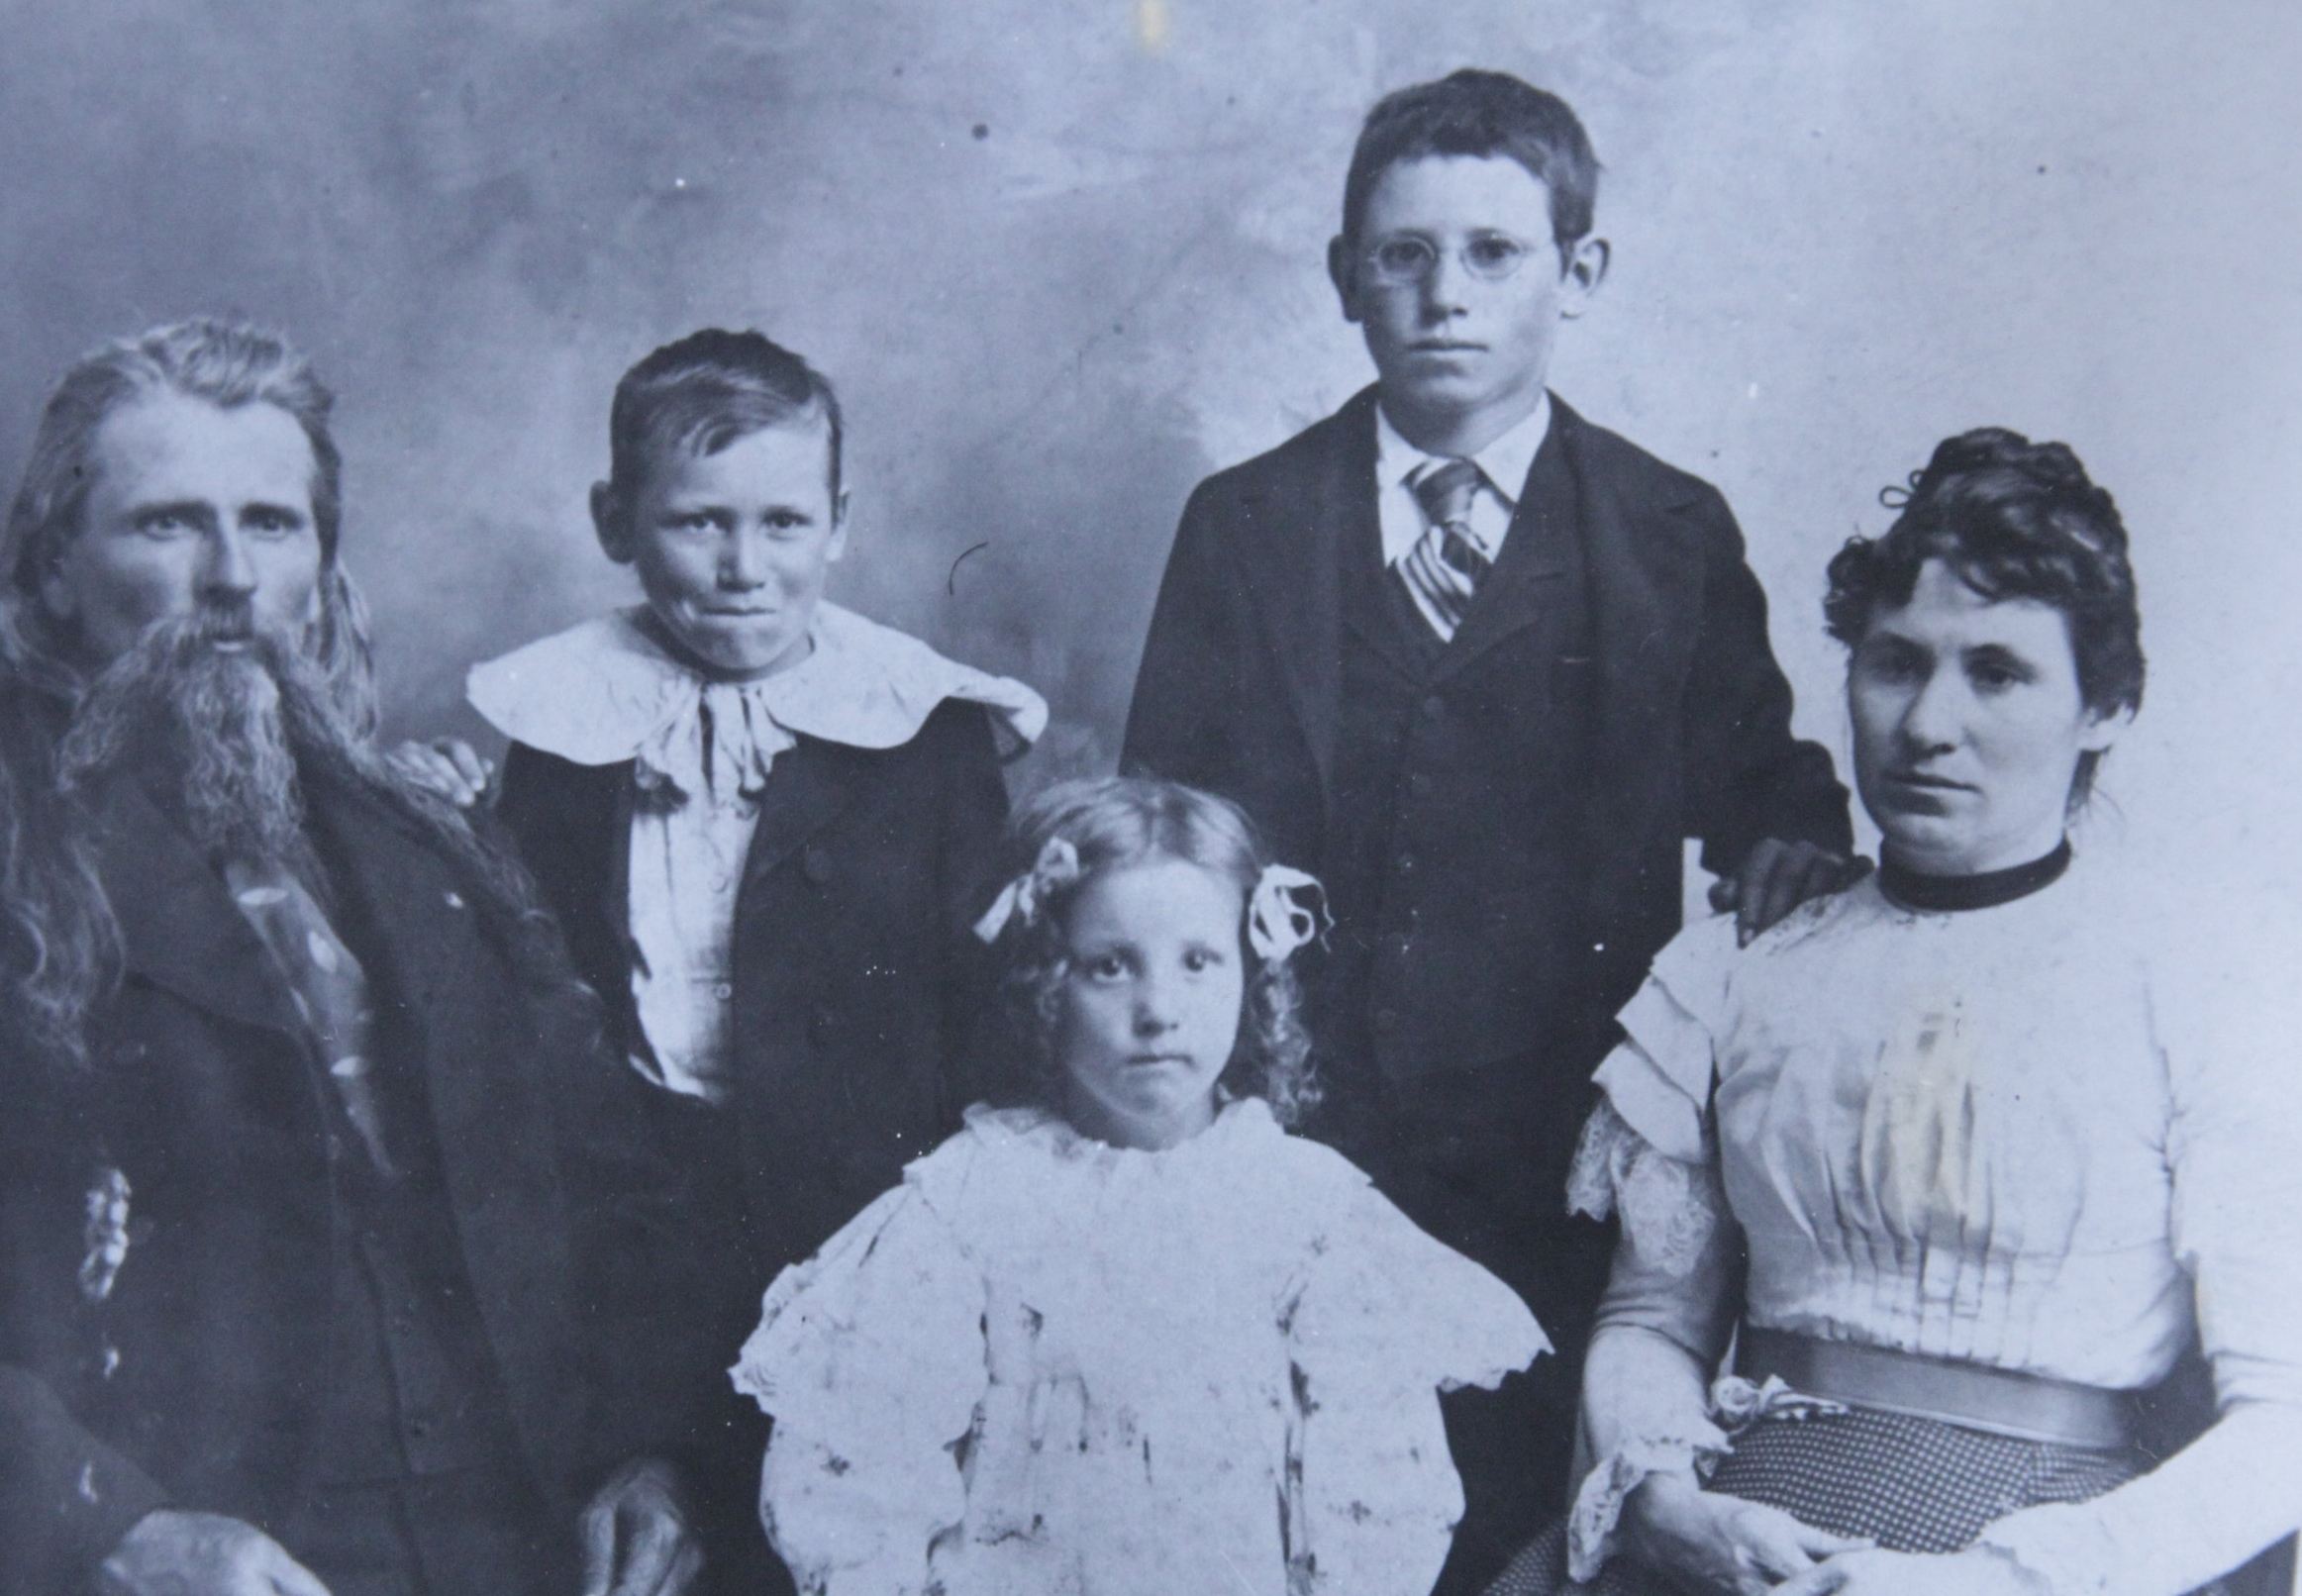 Doc Middleton & family, 1899. L-R: Doc, Joseph, Ruth, David, Rene